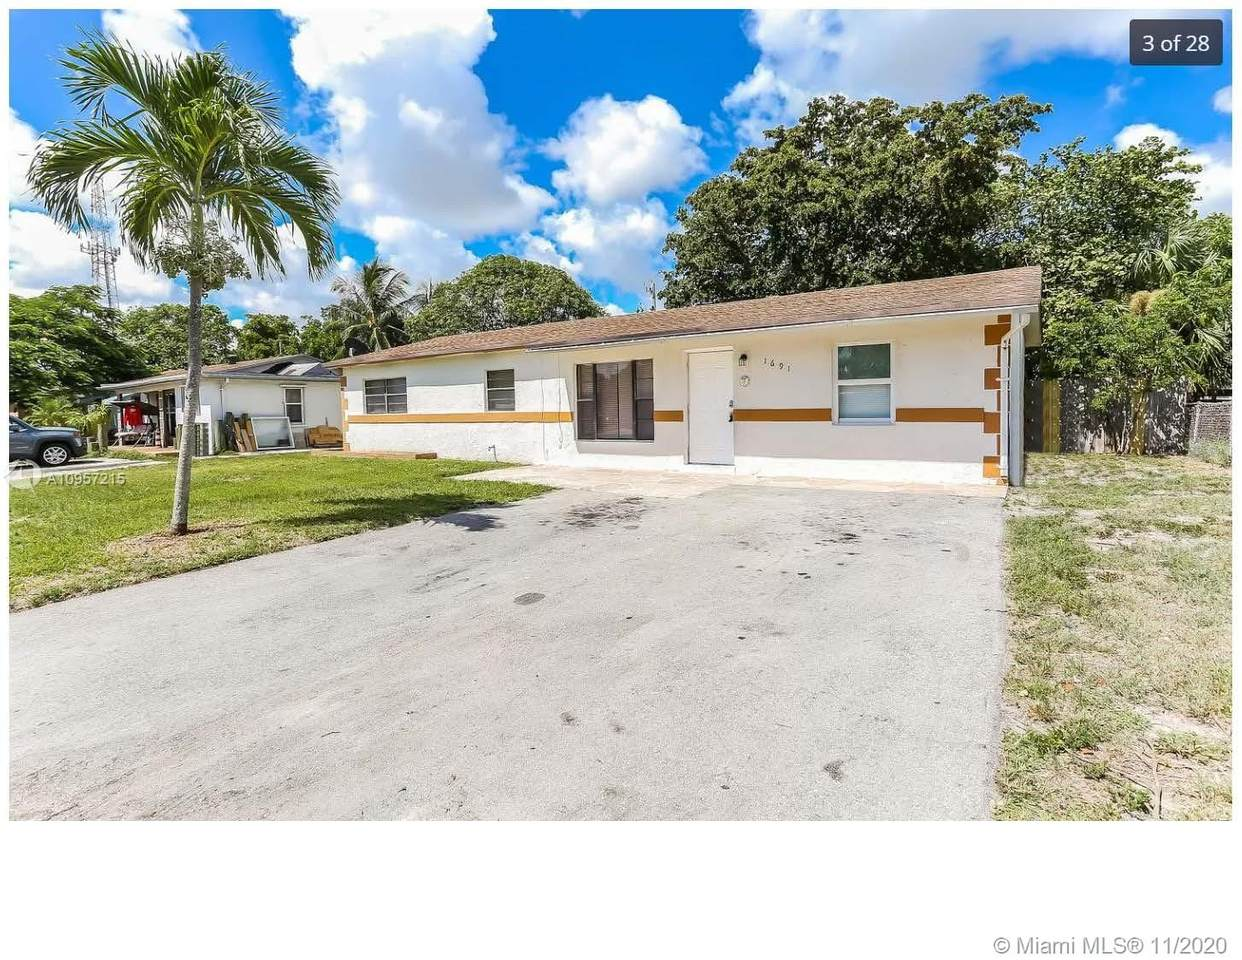 1691 Cypress Rd - Photo 1